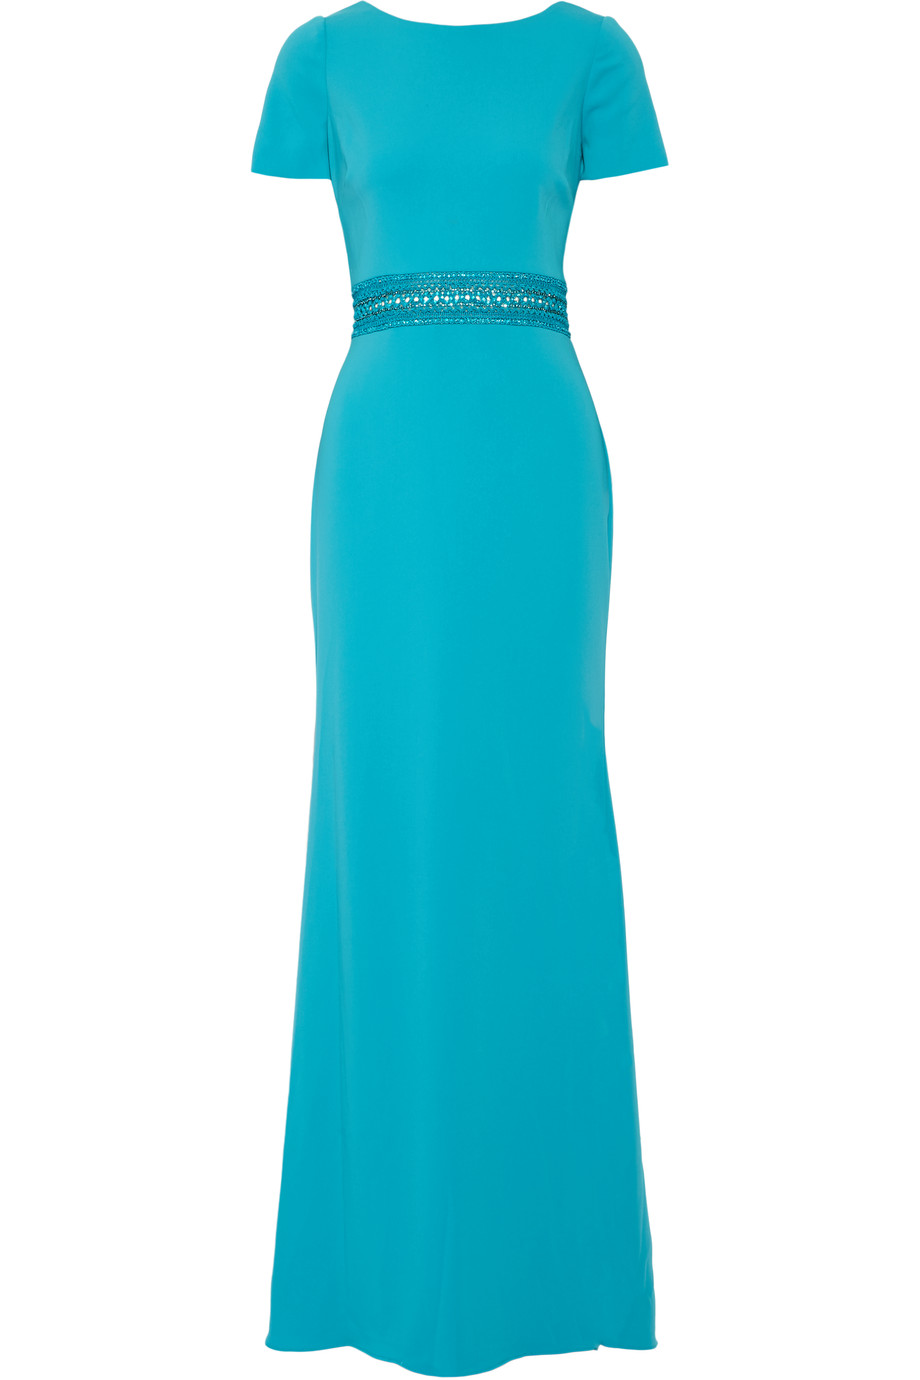 Badgley Mischka Turquoise Gown. Reduced by 75% to now only �249!